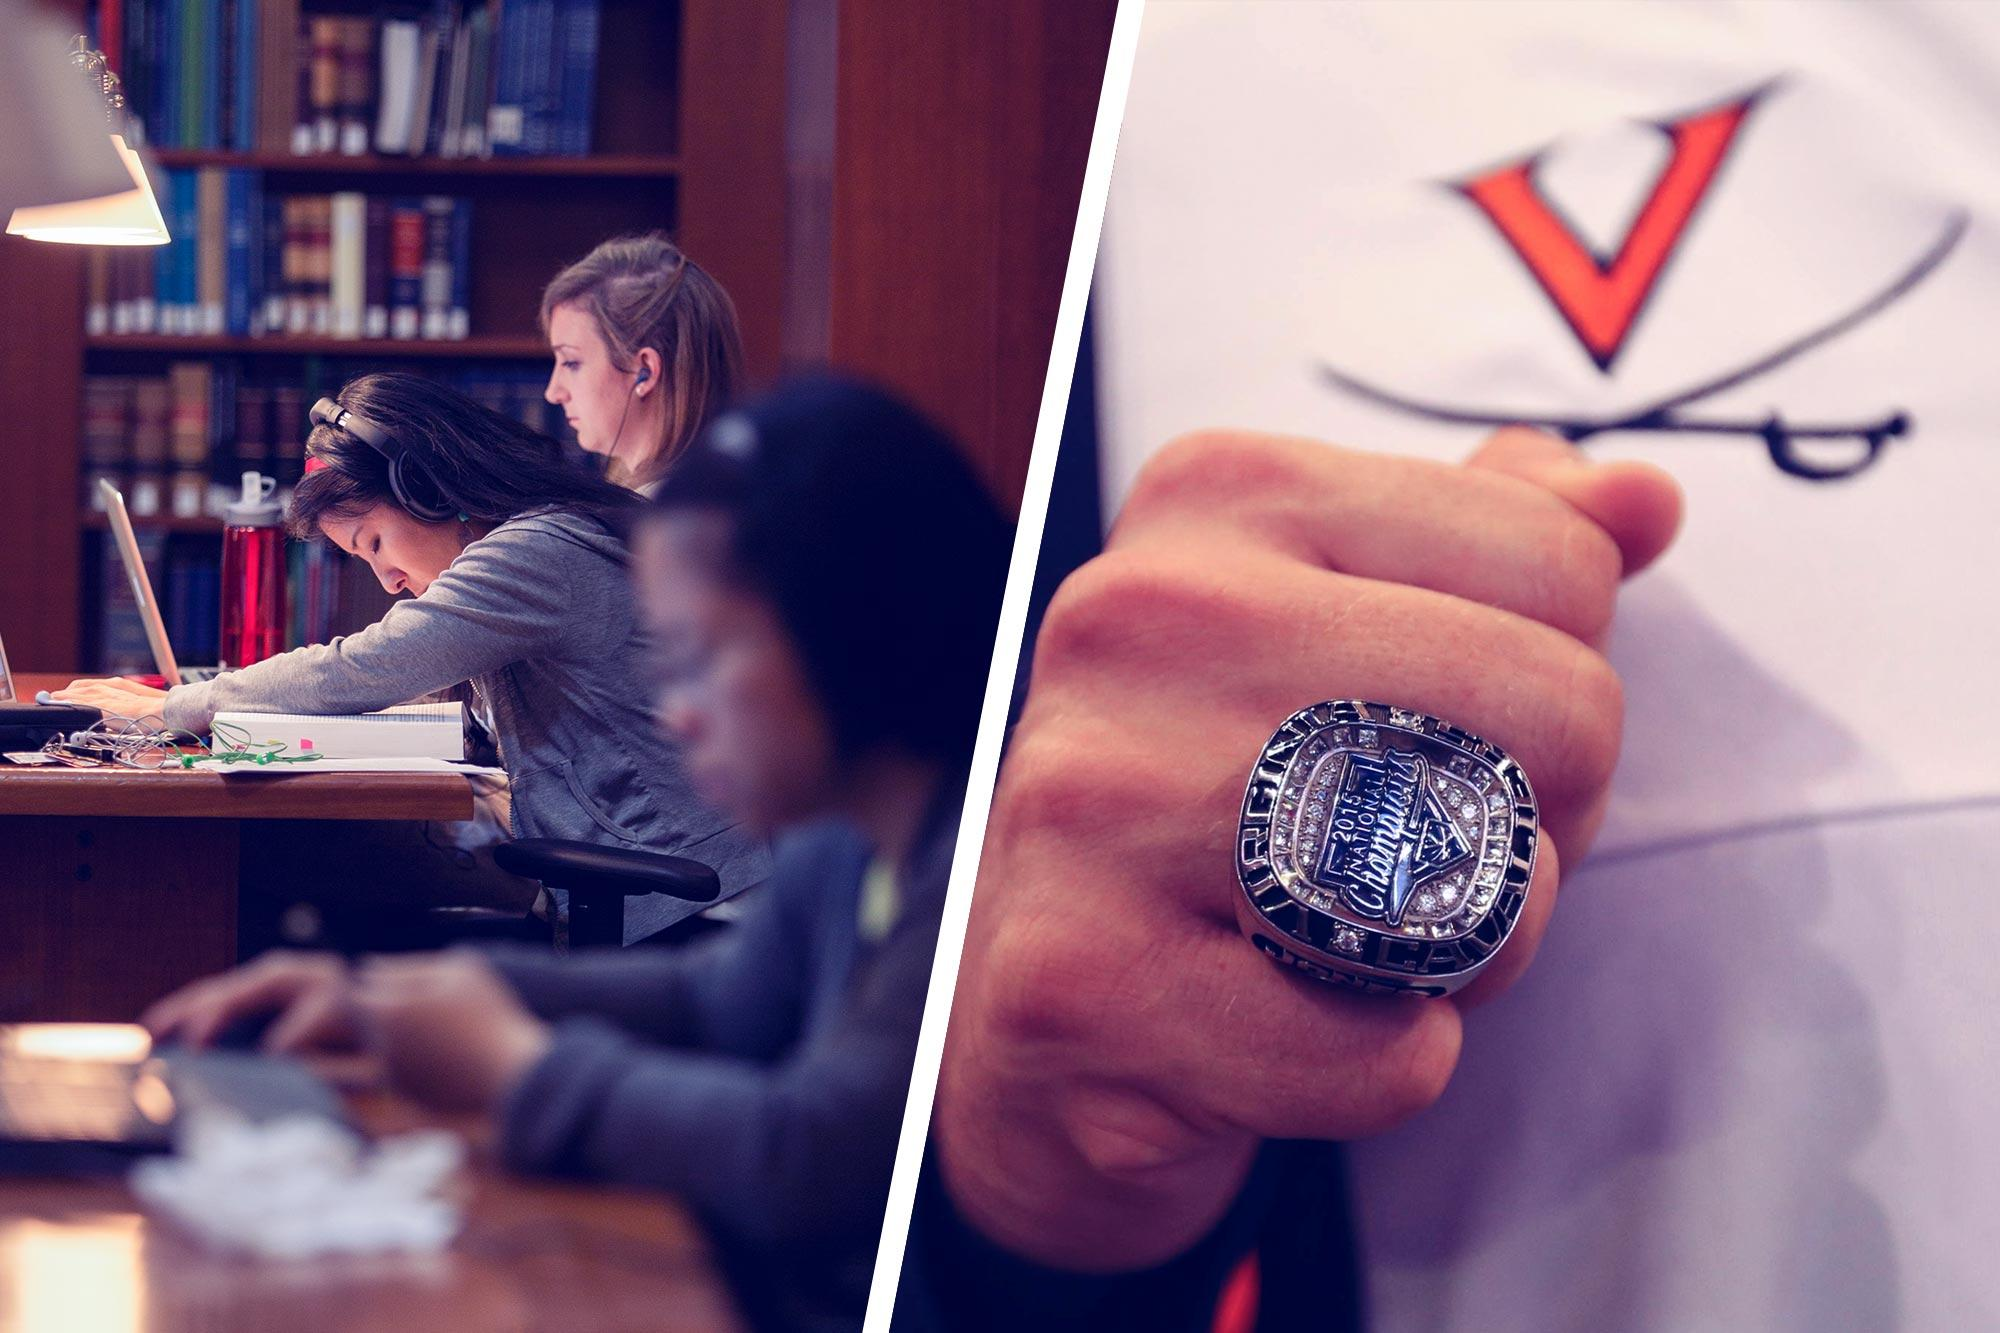 Women studying in a library, left, and a close up of a championship ring, right.